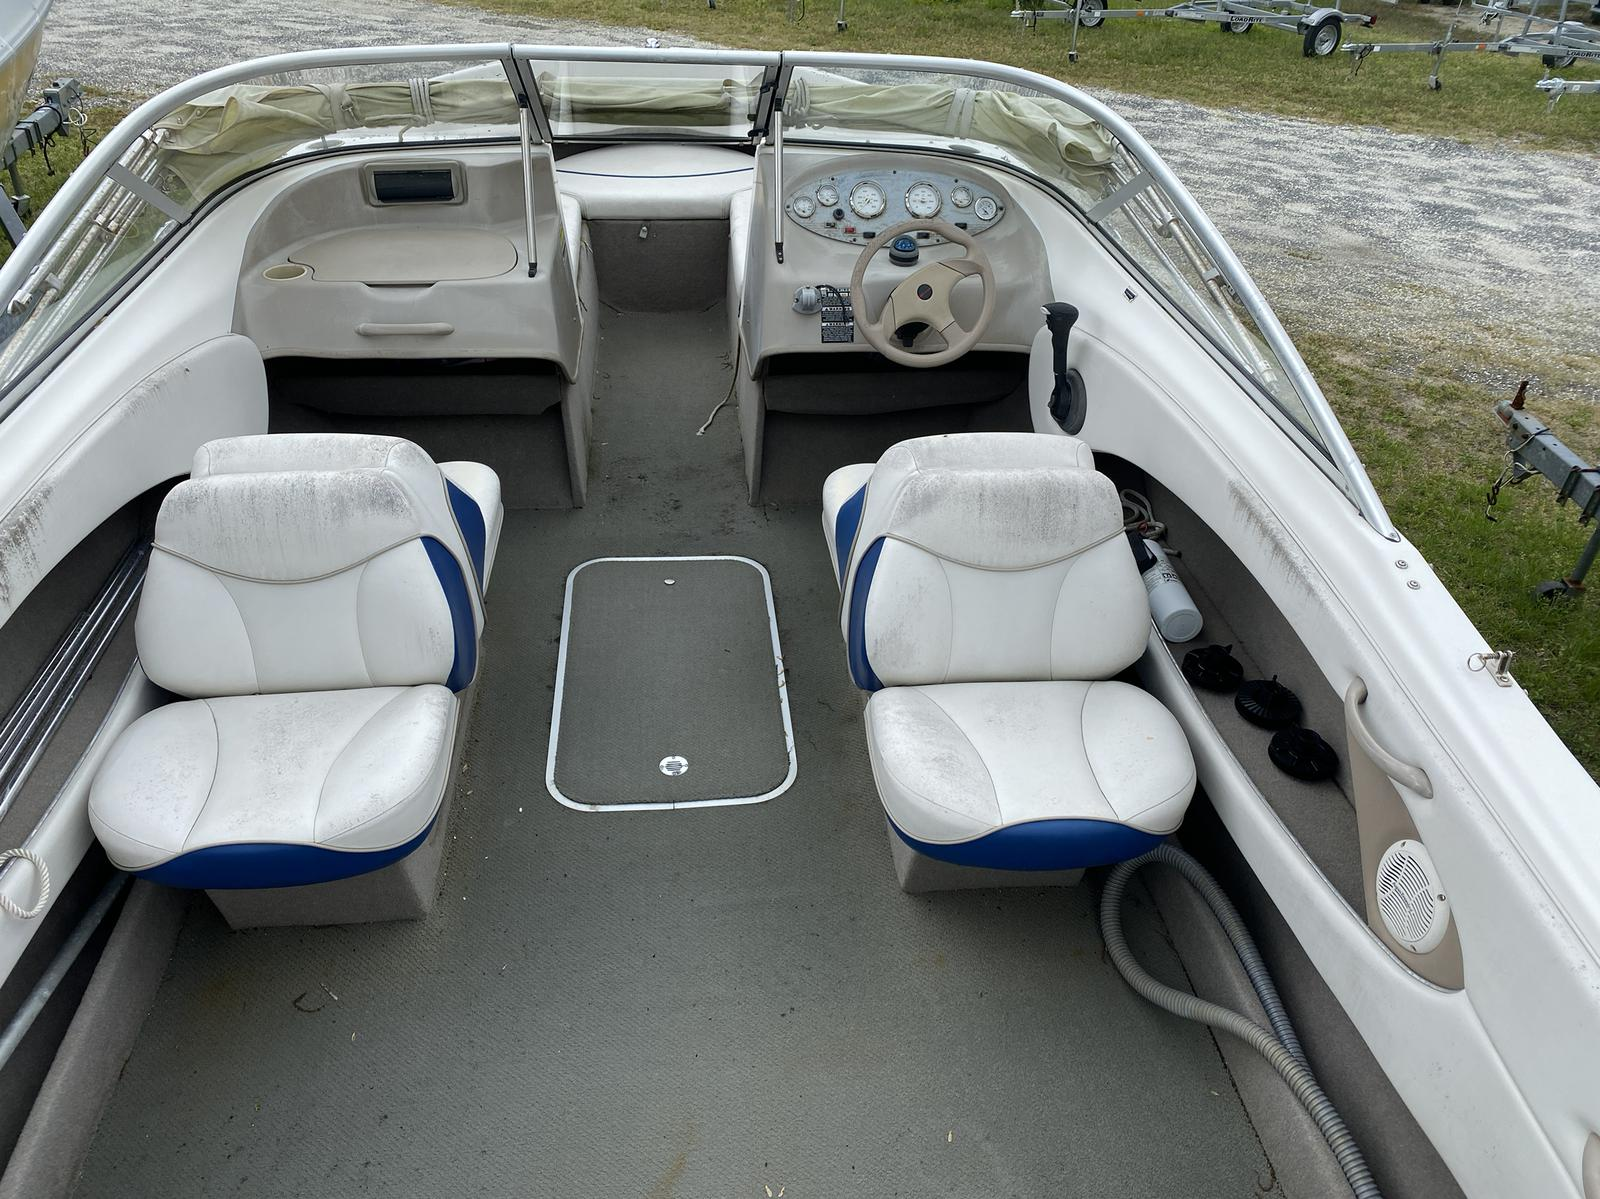 2004 Bayliner boat for sale, model of the boat is 215BR Classic21 & Image # 3 of 9